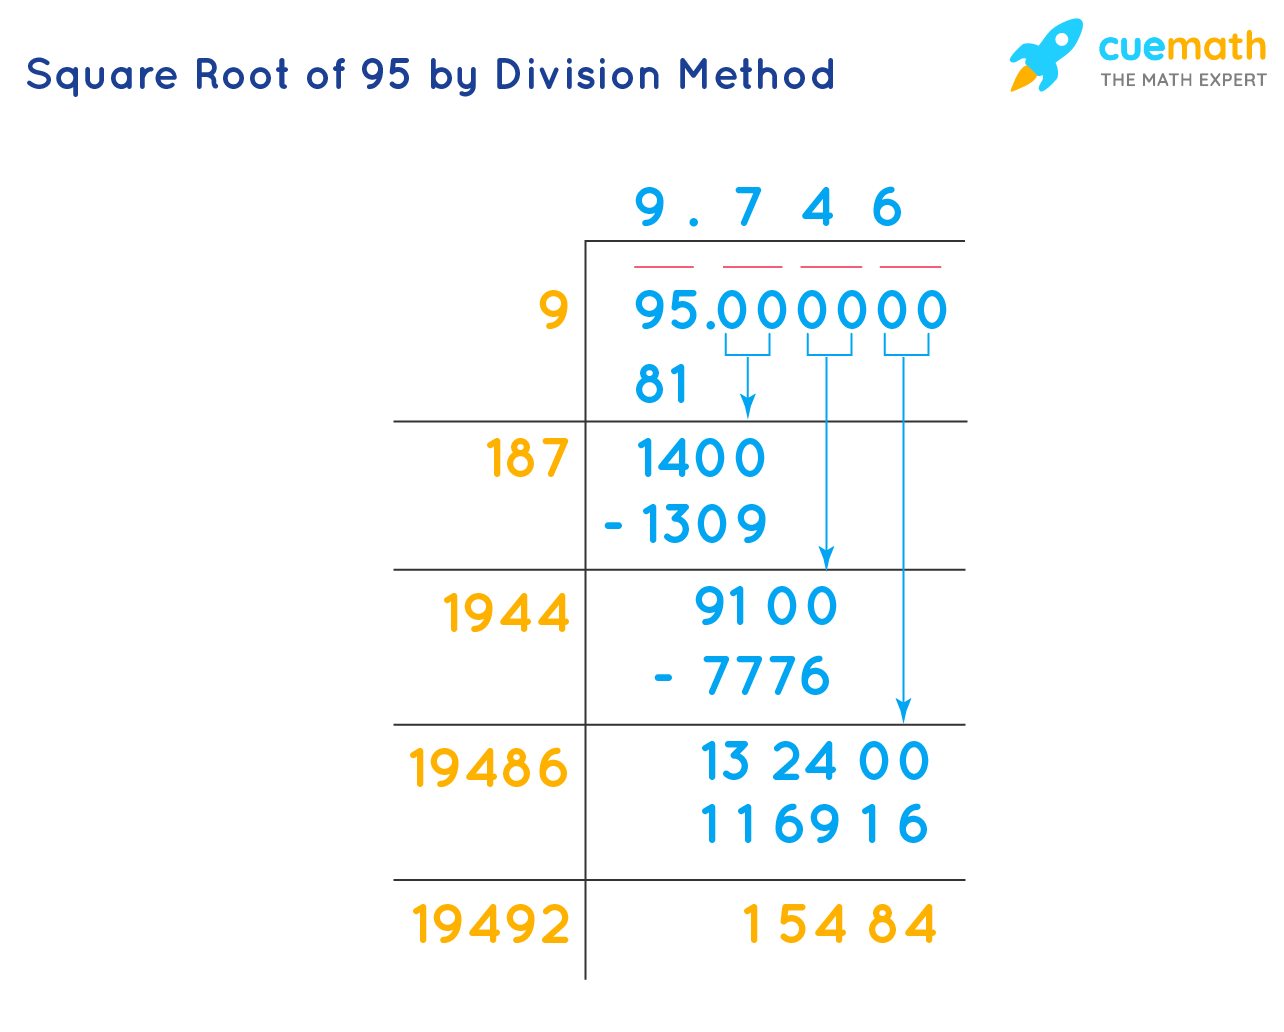 square root of 95 by division method